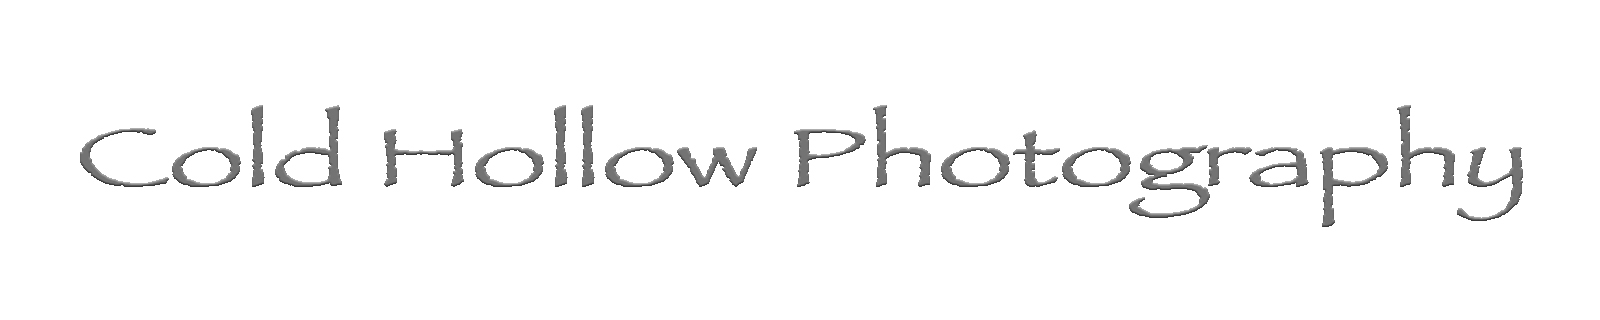 Cold Hollow Photography, LLC